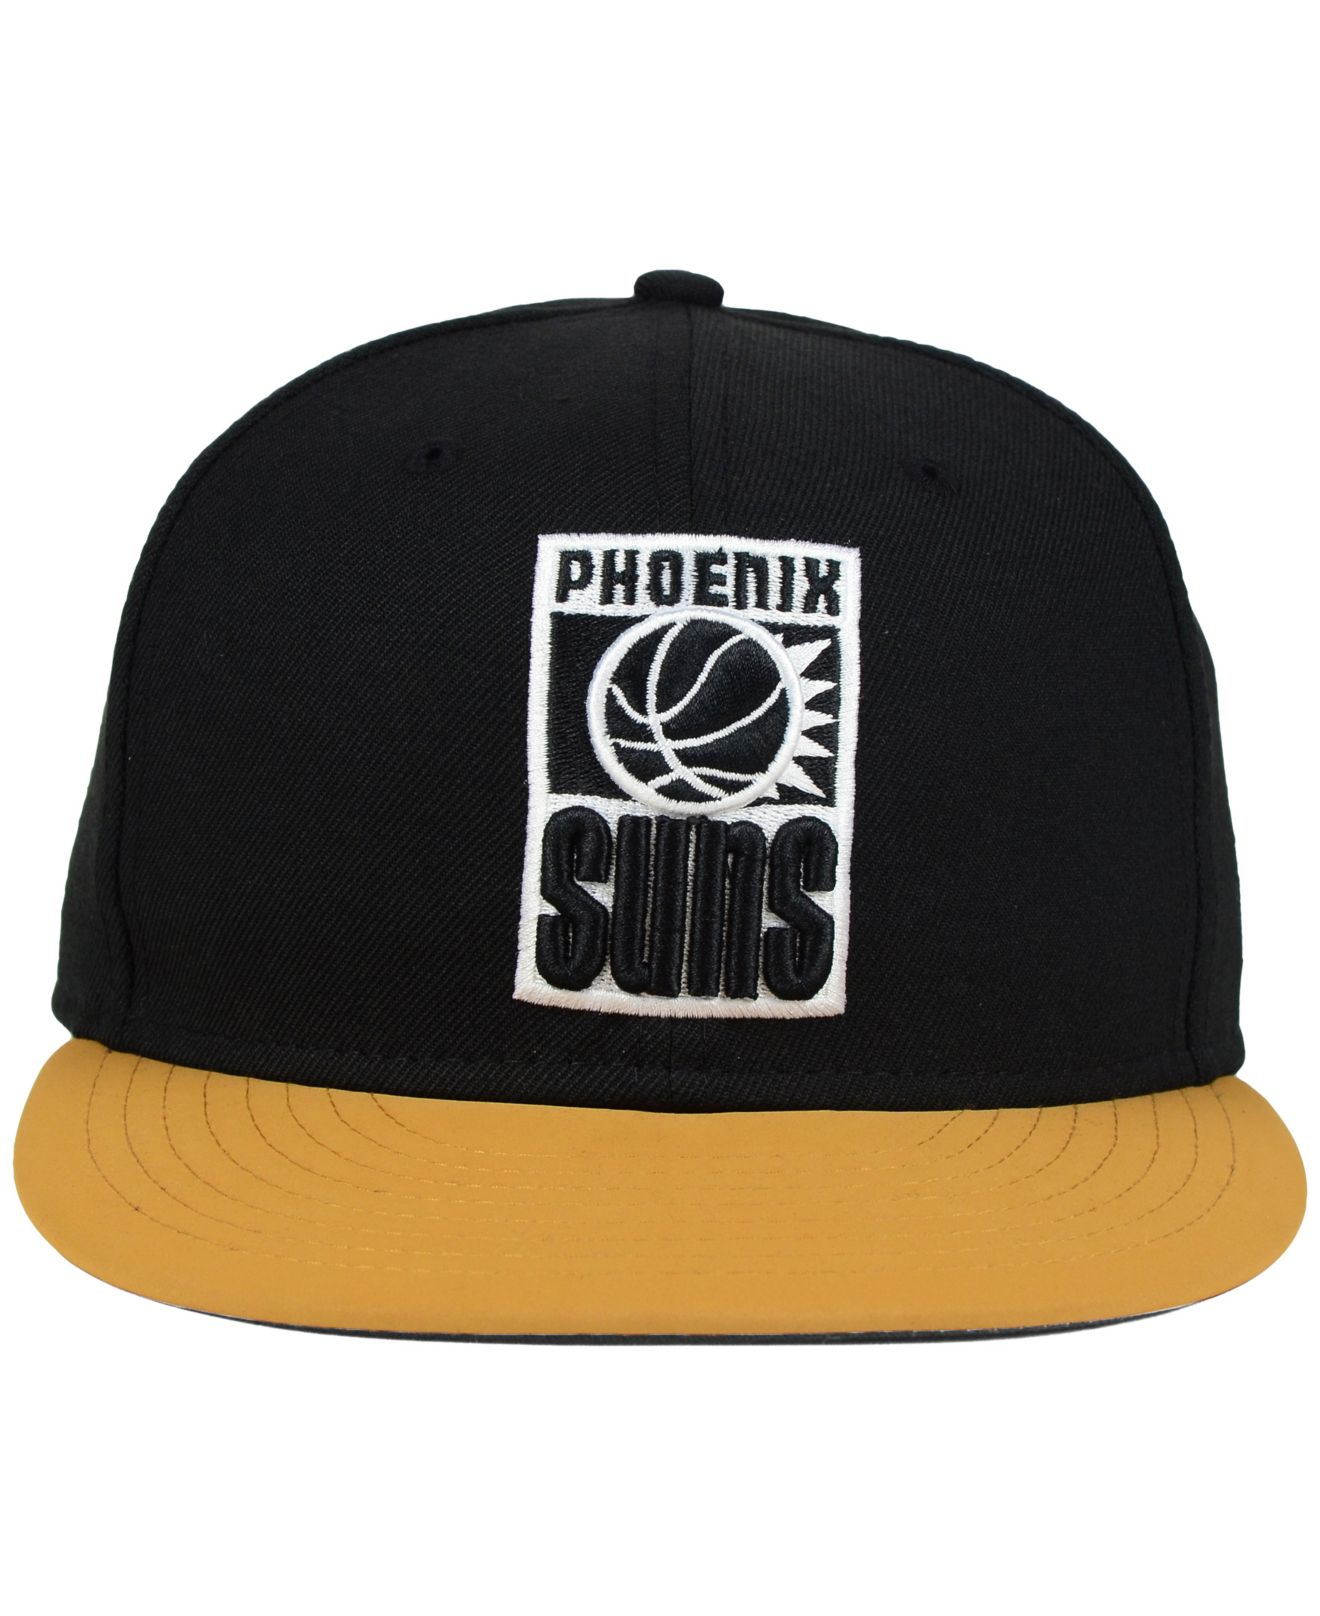 premium selection 954f4 4b1d7 ... coupon code lyst ktz phoenix suns nu viz 9fifty snapback cap in black  for men 6d8e2